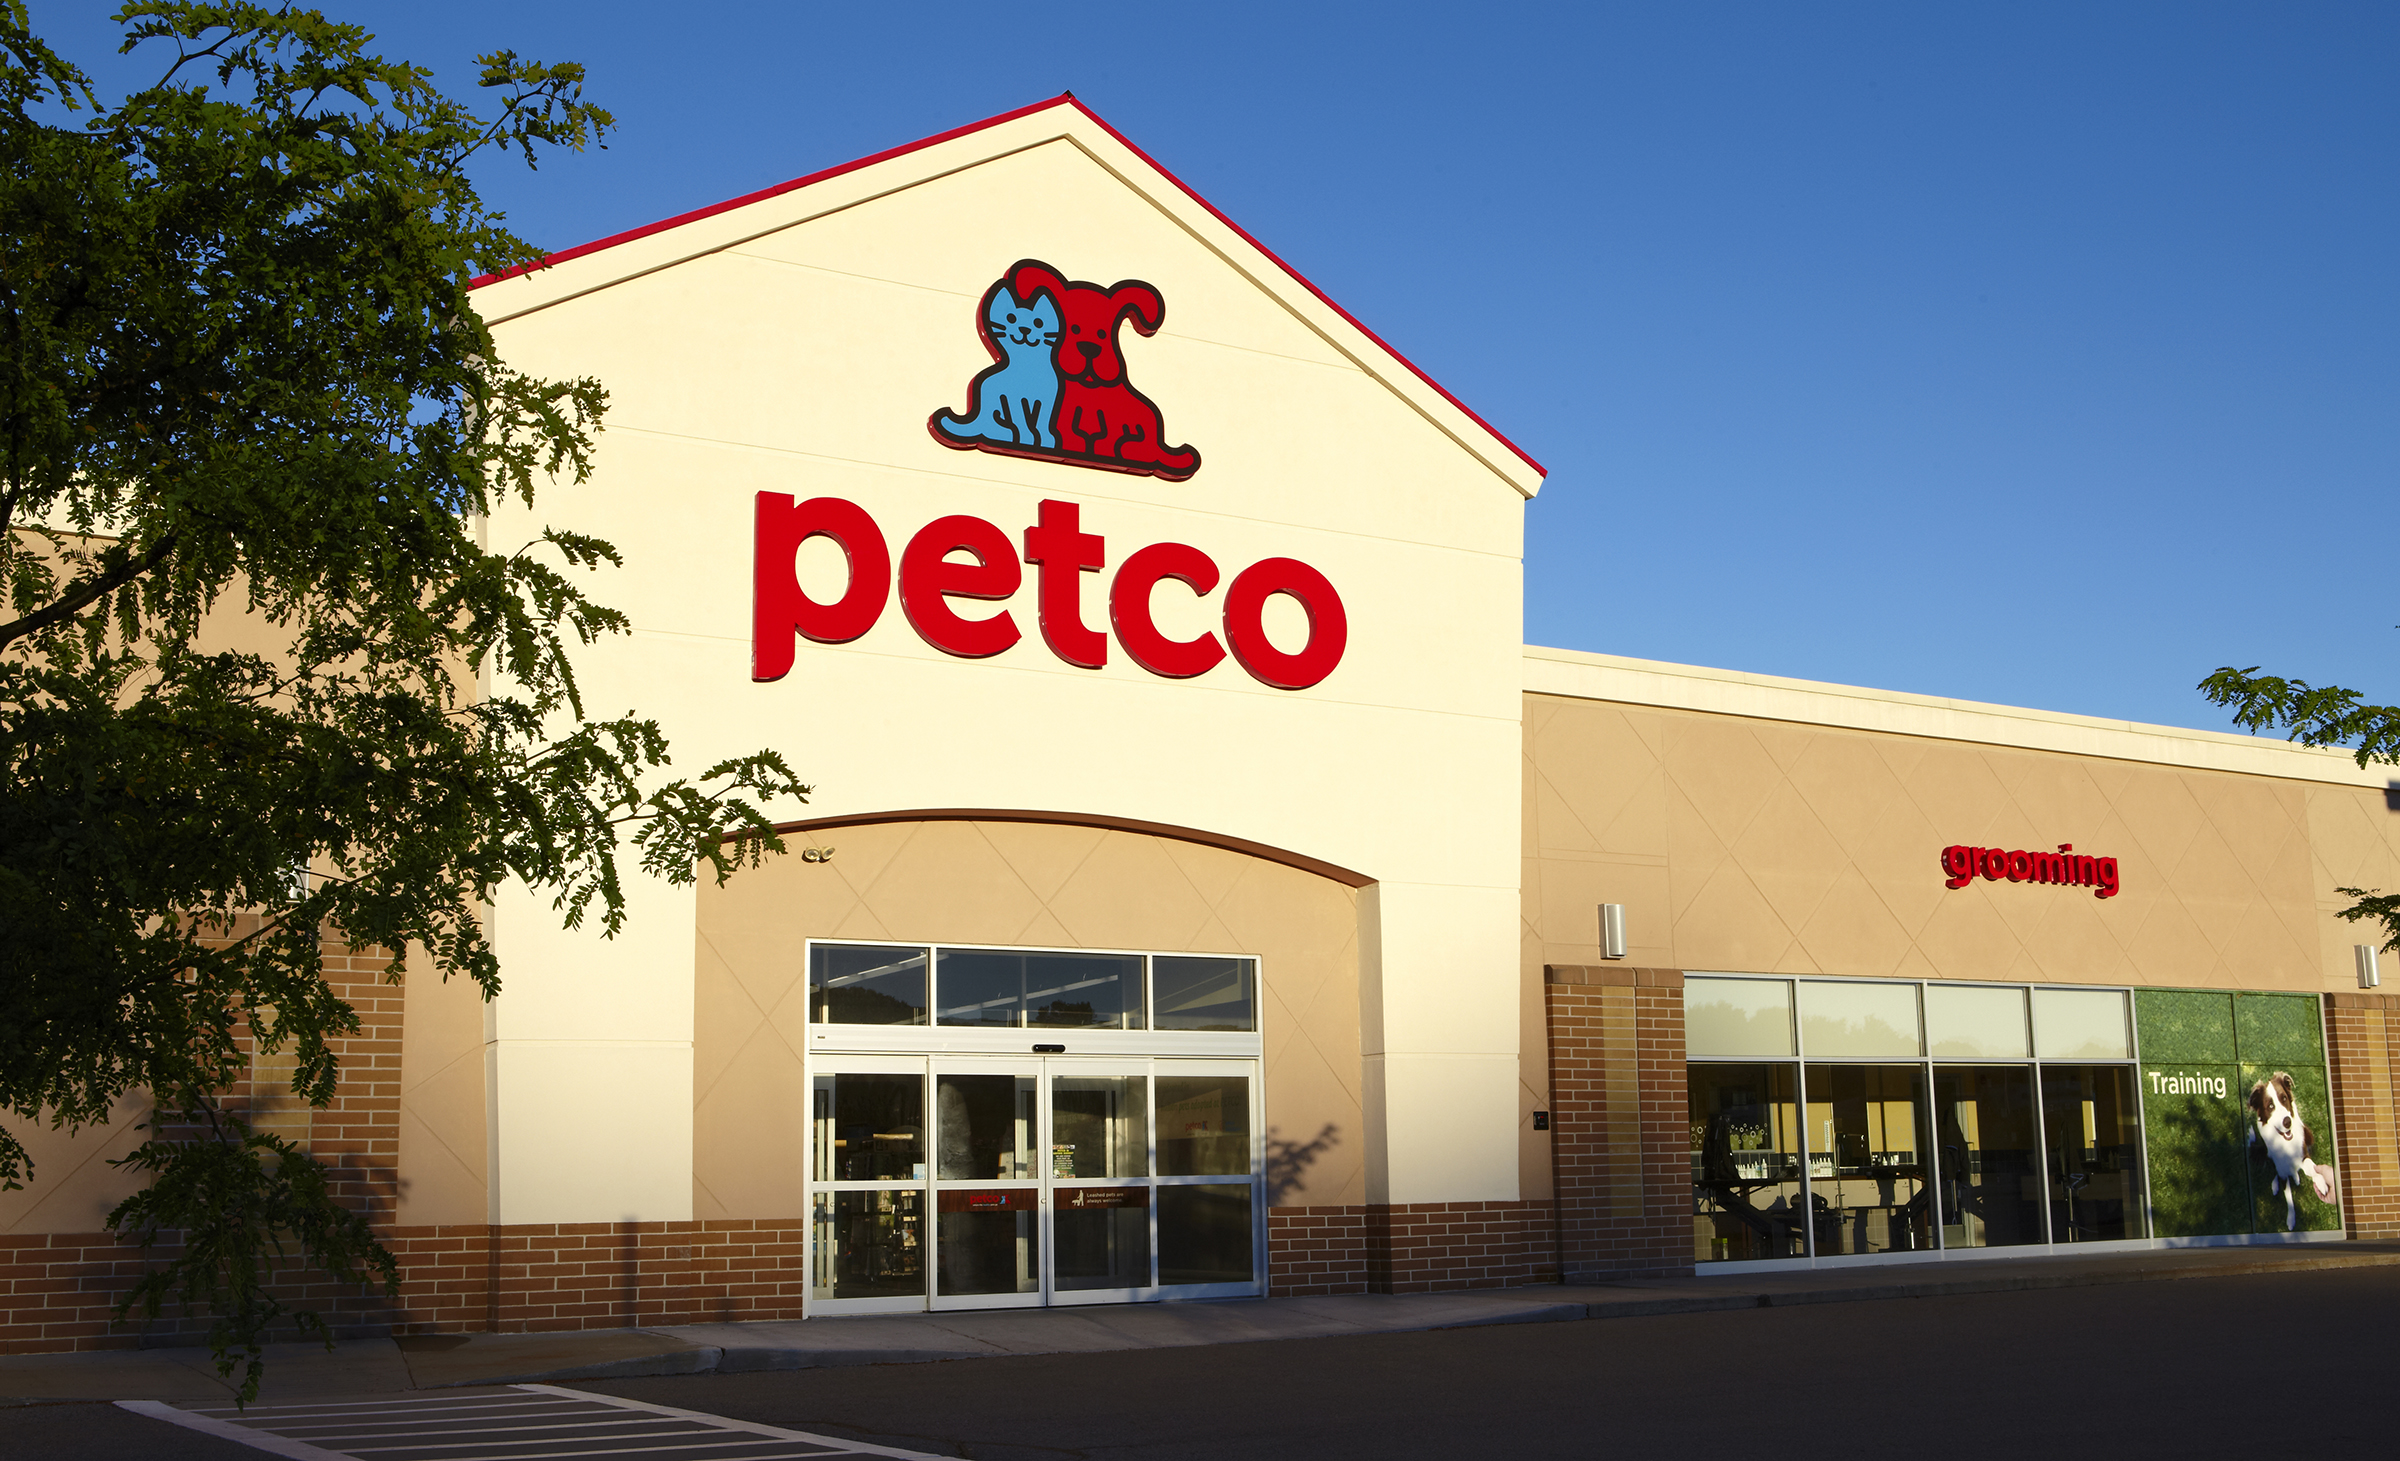 Petco - According To Its Website Petco Stores Provide A One Stop Shopping Experience Where Pet Parents Can Purchase Anything From Pet Food To Toys And Apparel